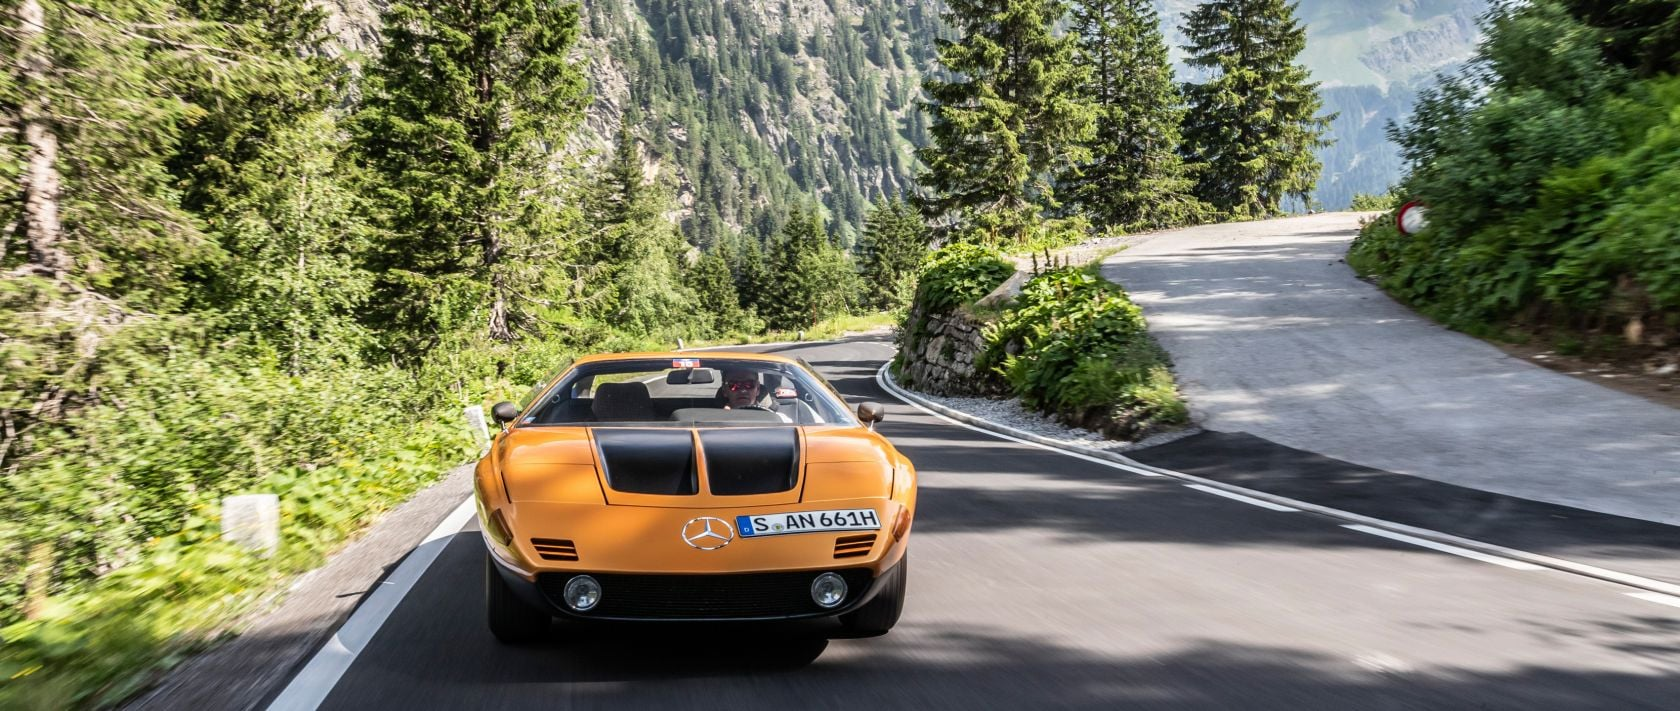 The Mercedes-Benz C 111 of the second series was powered by a 3.5-litre V8 engine generating 147 kW / 200 PS.